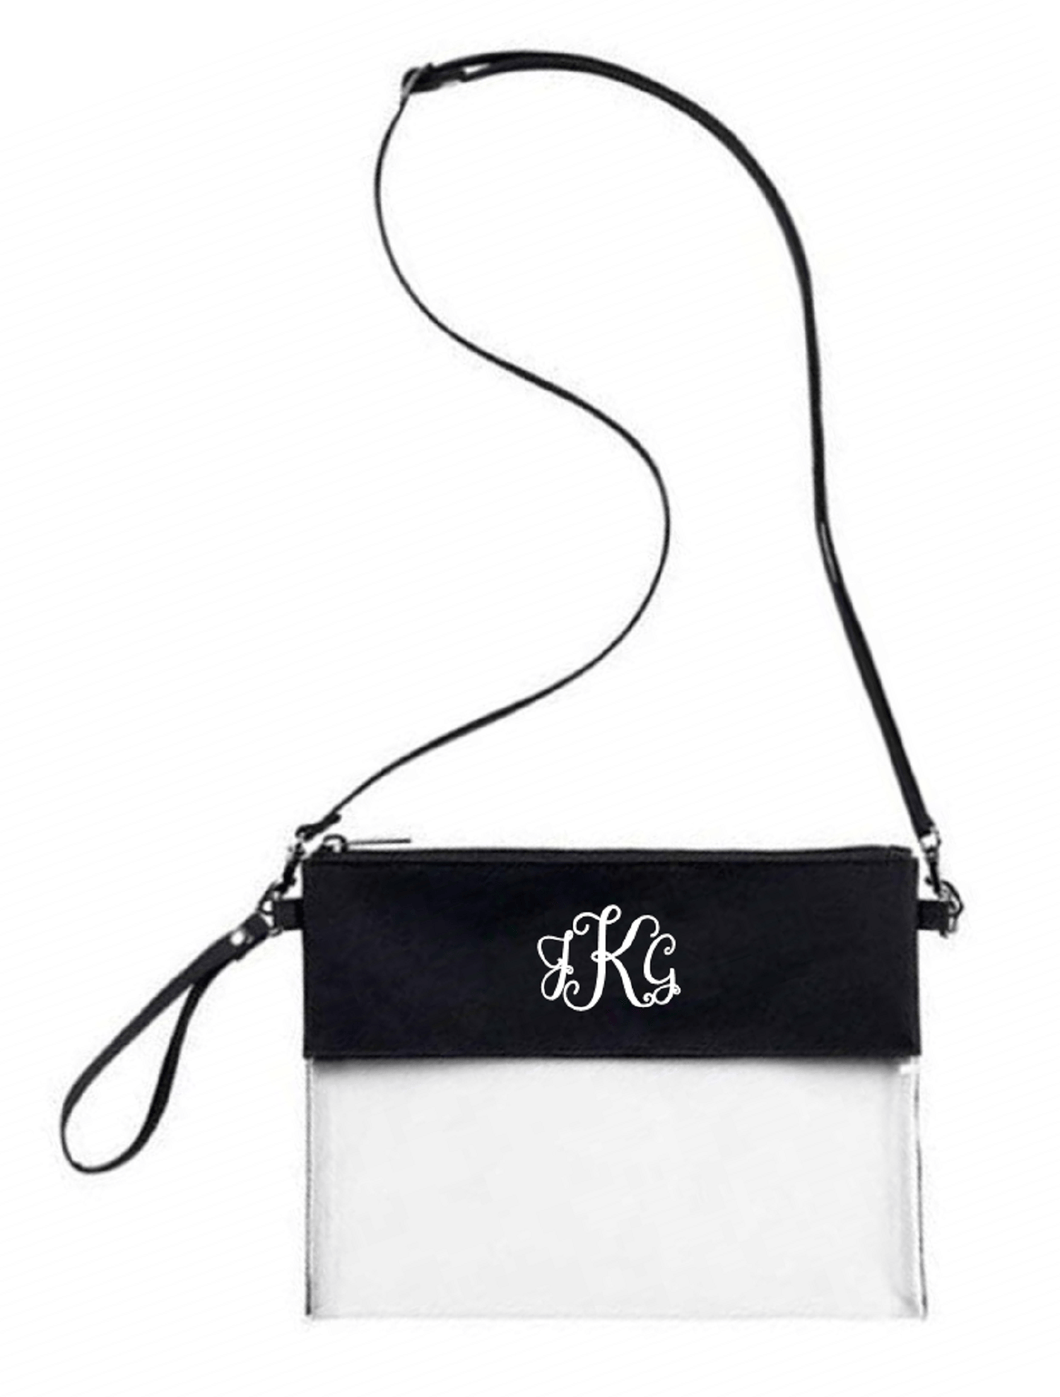 Custom Monogrammed or Personalized Purse/Clear Stadium Bag/Crossbody Bag/Stadium Purse | DG Custom Graphics